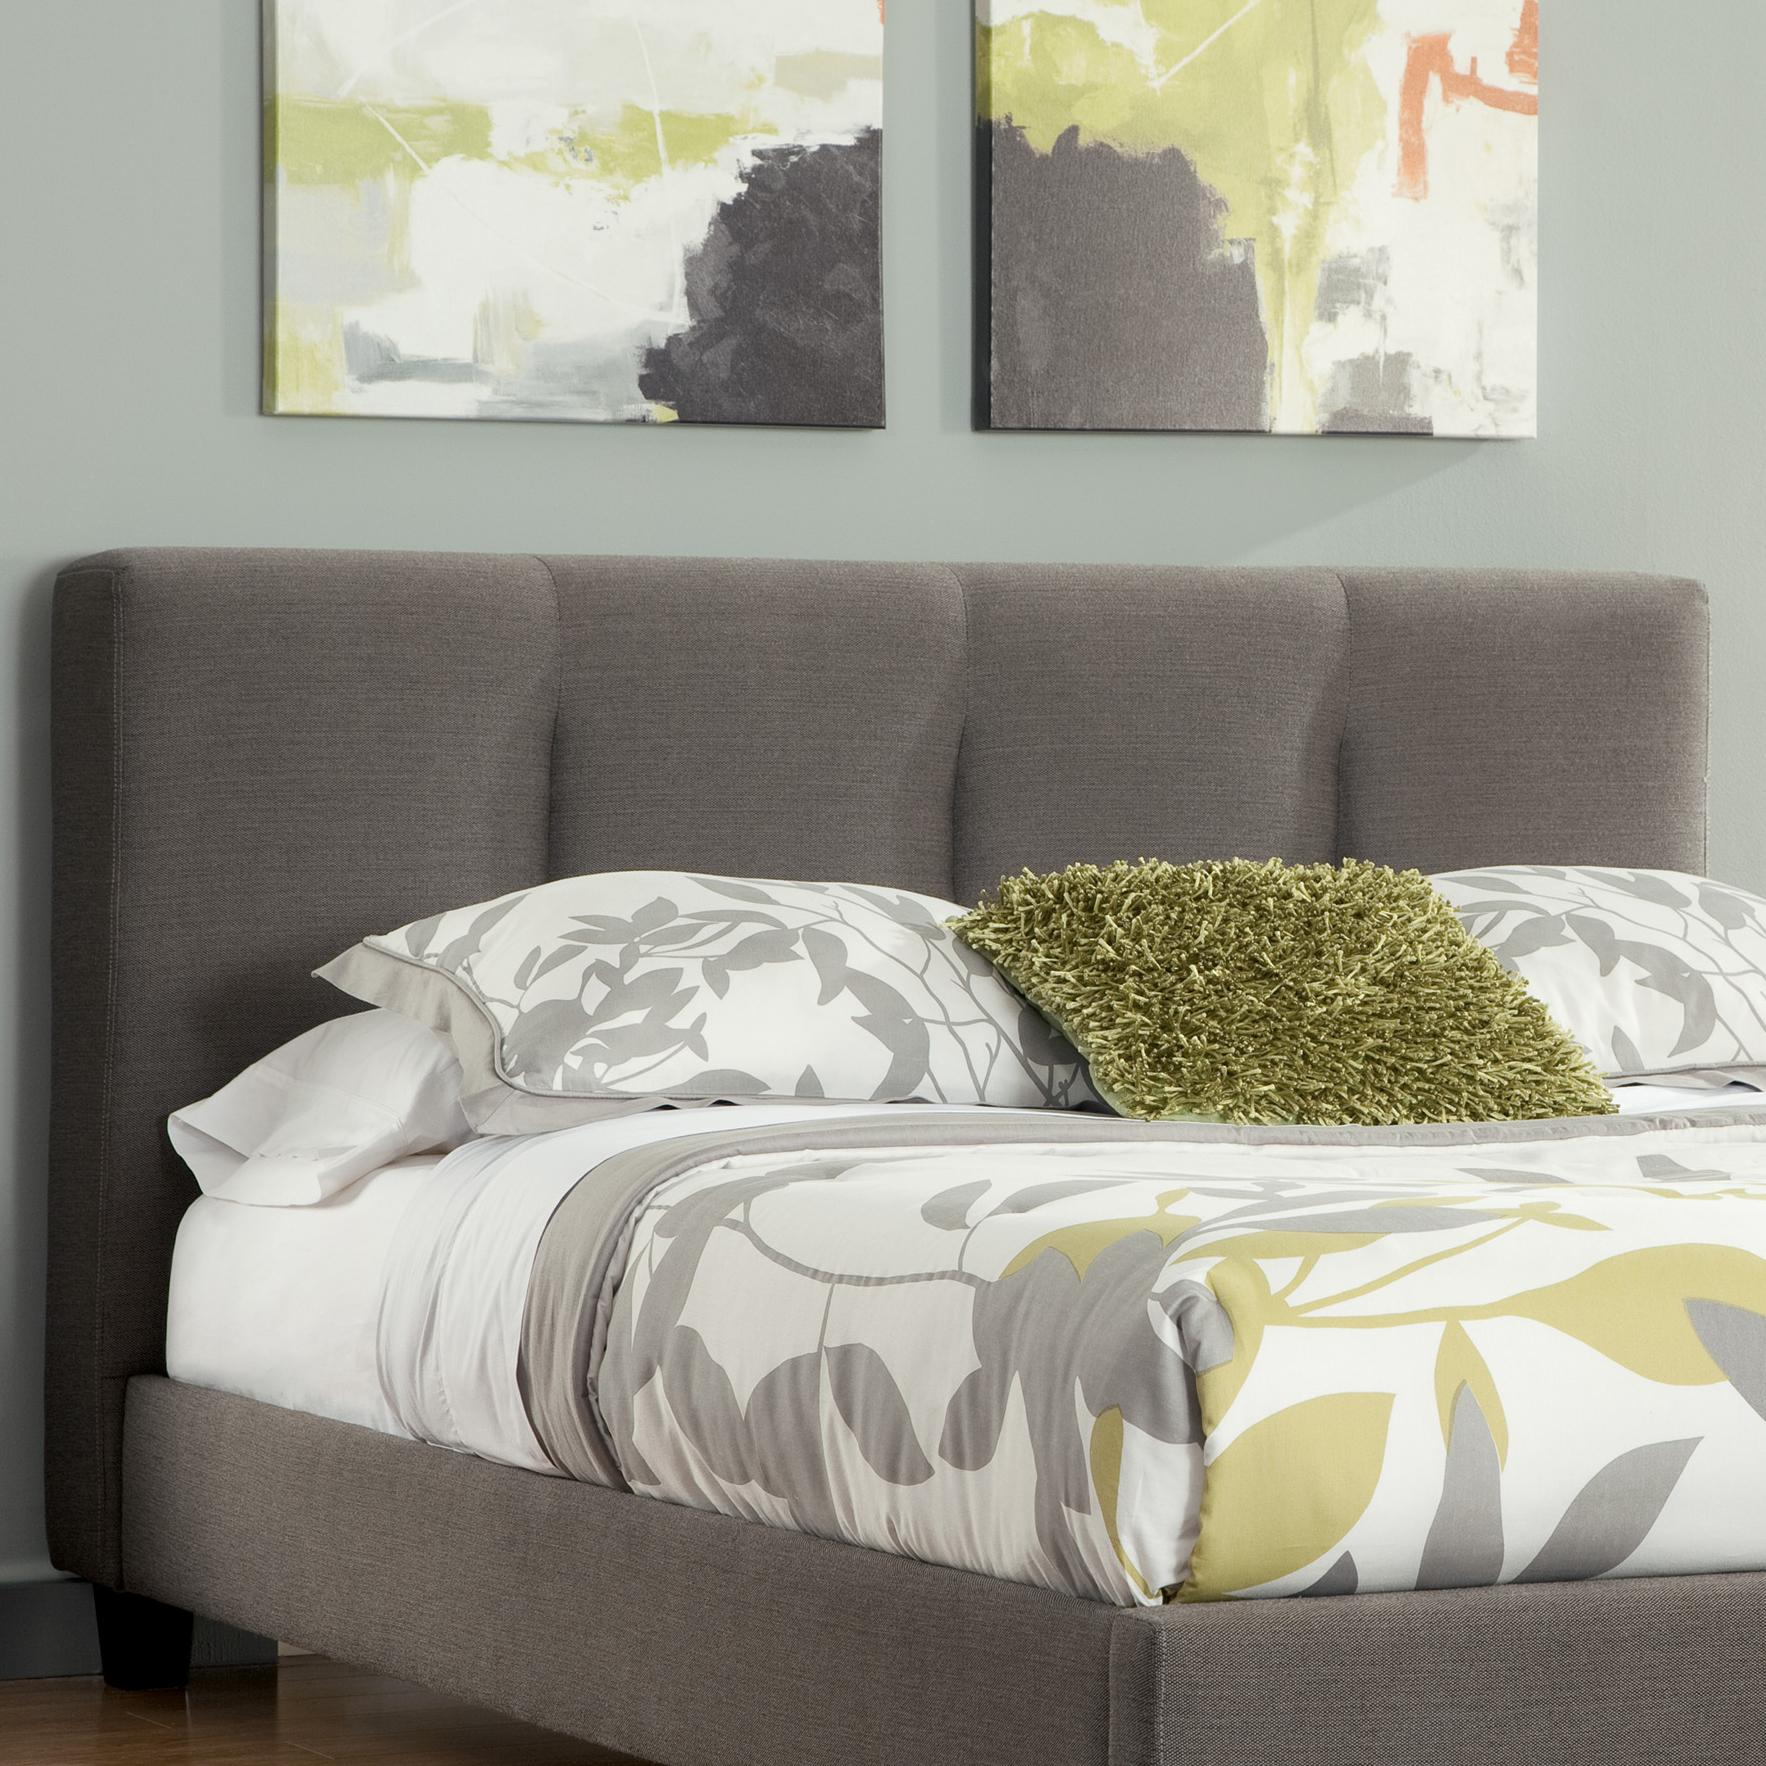 B657 77 Ashley Furniture Queen Upholstered Bed: Signature Design By Ashley Masterton B702-77 Queen